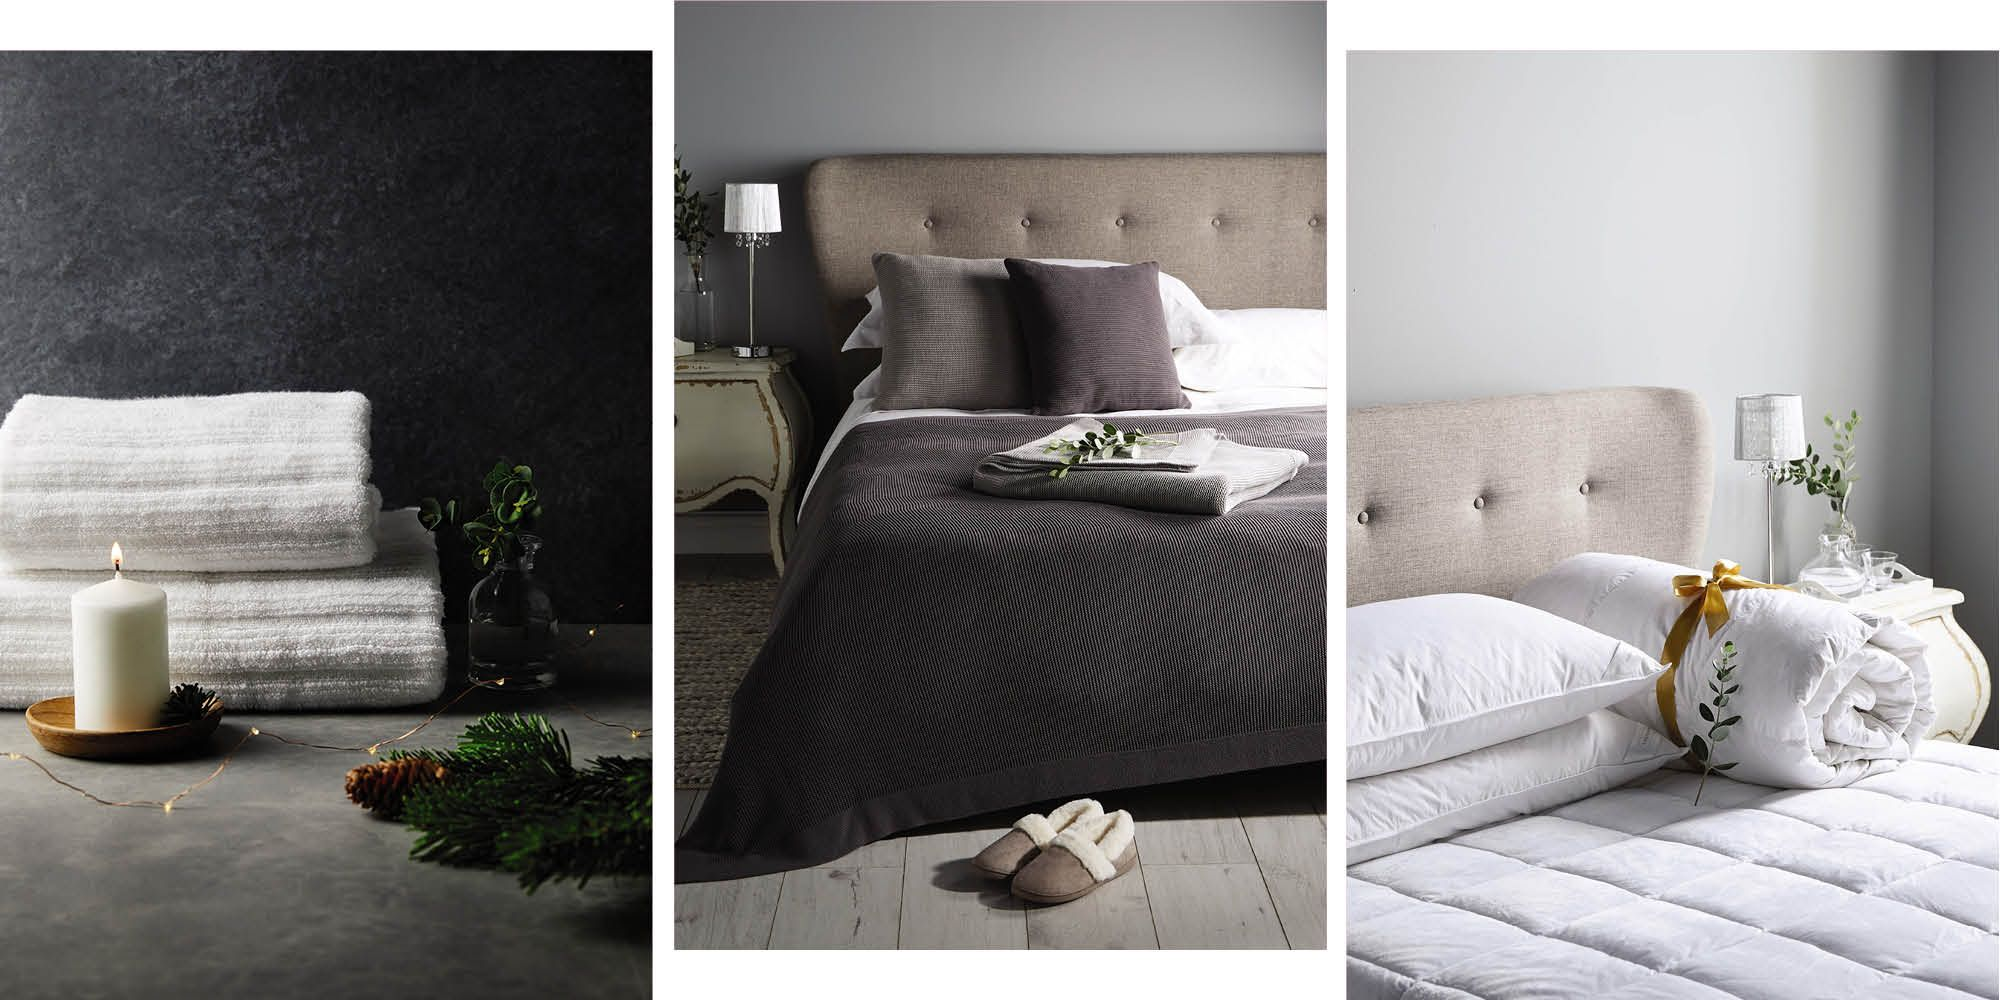 Can we talk about Aldi's The White Company-inspired bed linen?